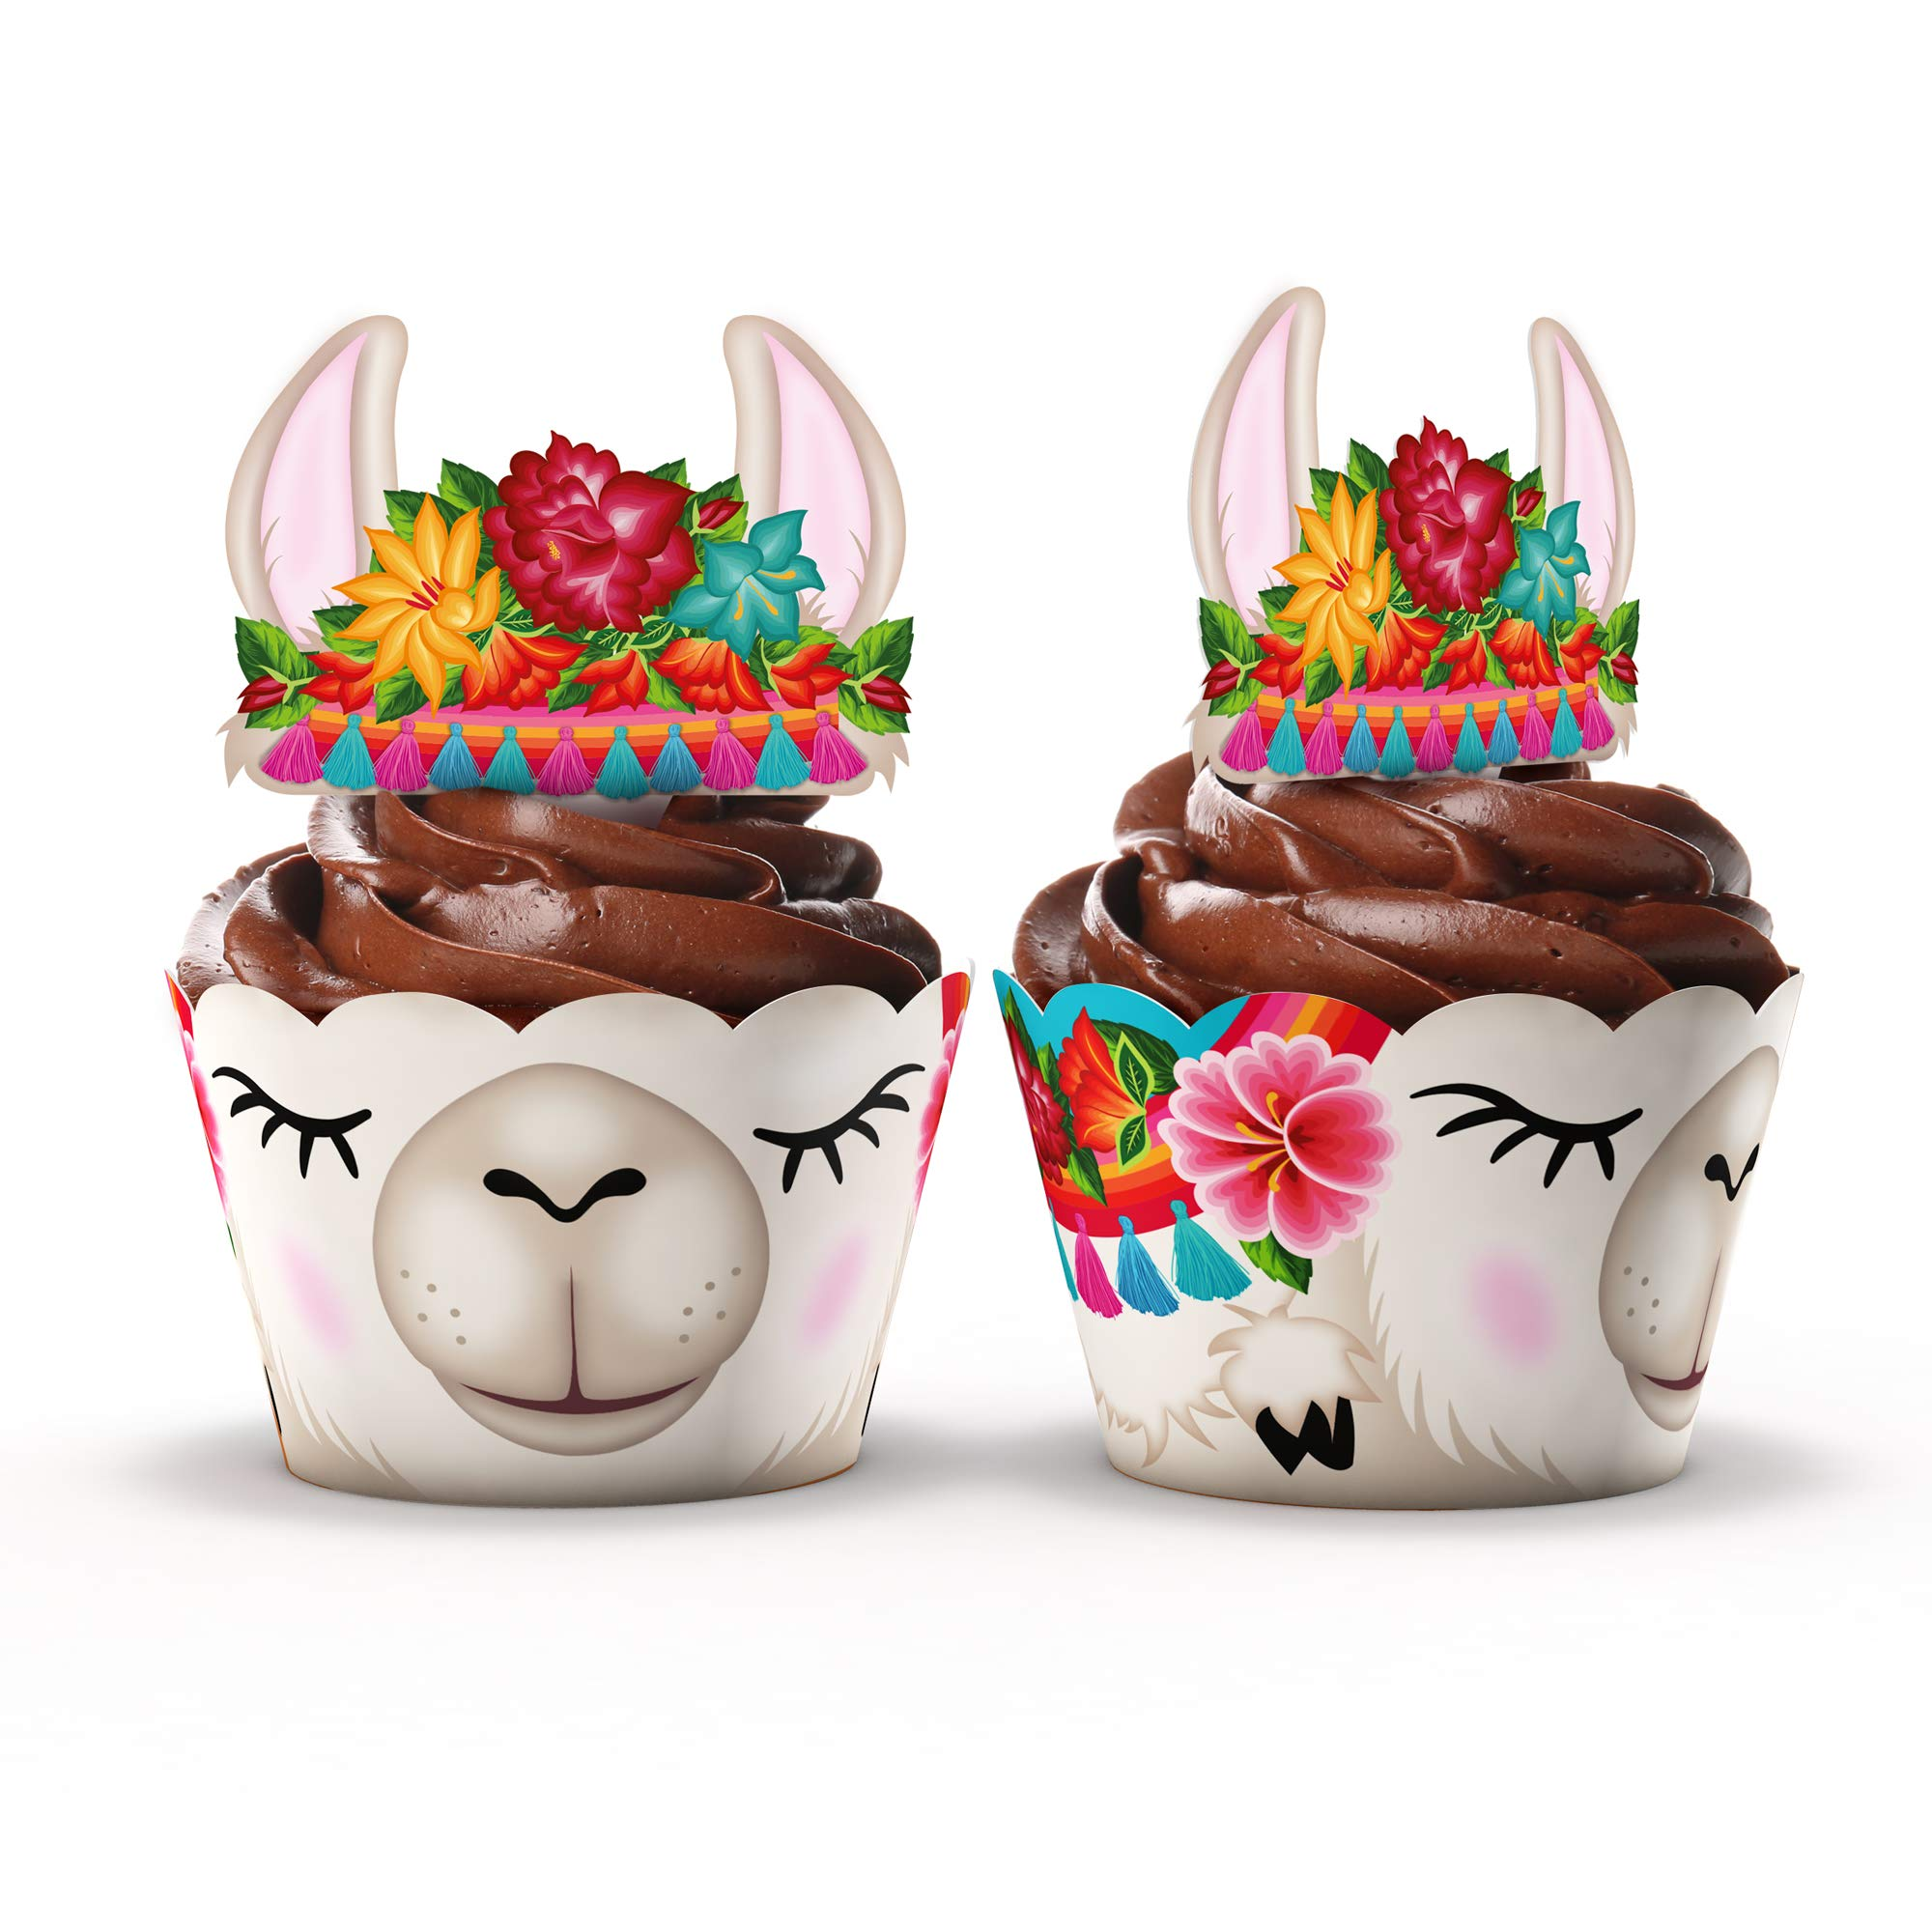 Llama Party Supplies Cupcake Toppers and Wrappers - Set of 24 - Fiesta party supplies (Llama) by Funky Fledgling